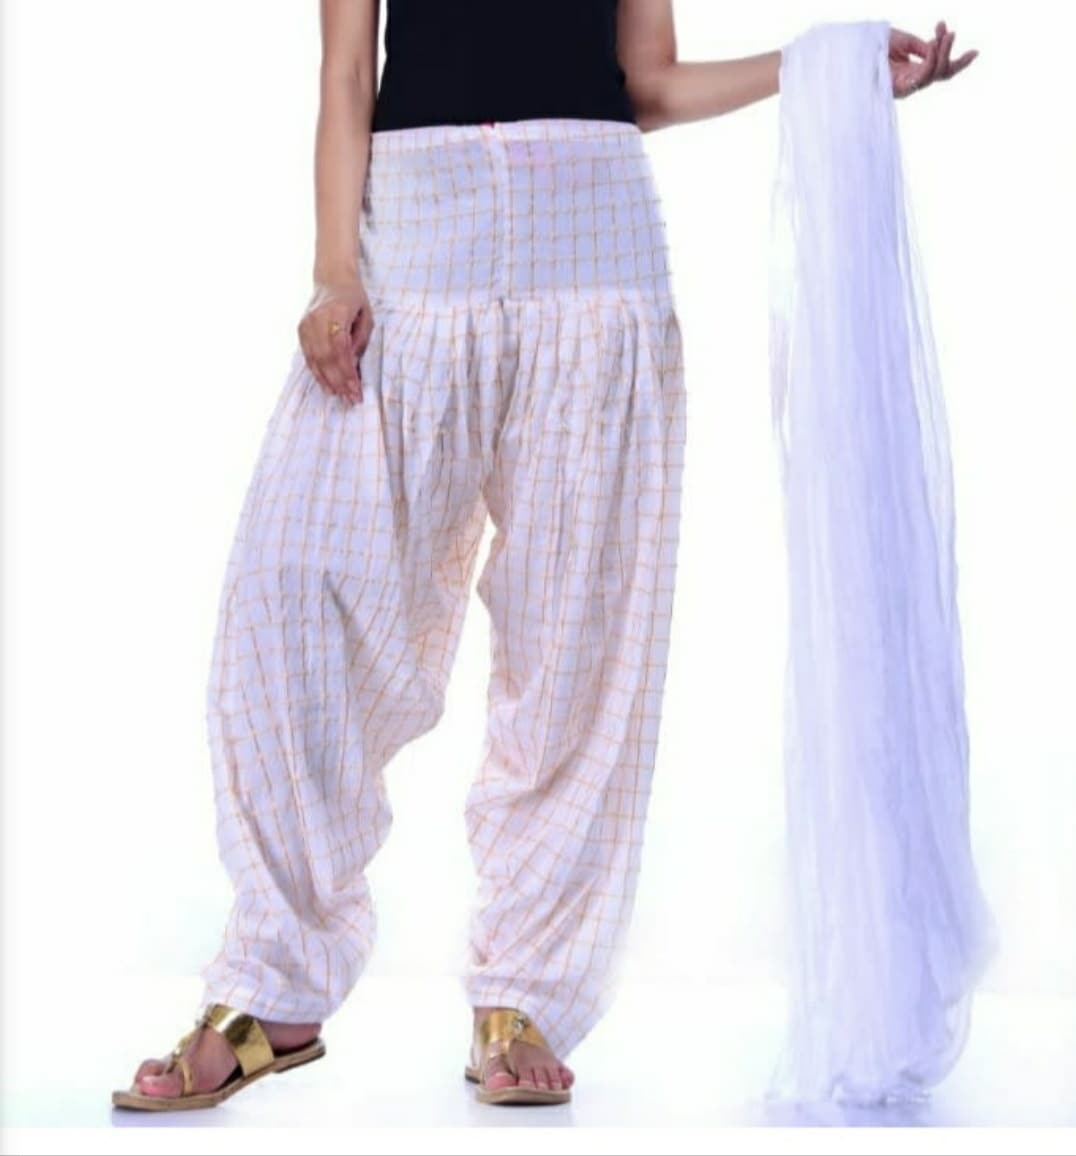 Samridhi Collections Combo Of Women's Cotton Patiala Golden Check Print With Dupatta (White)